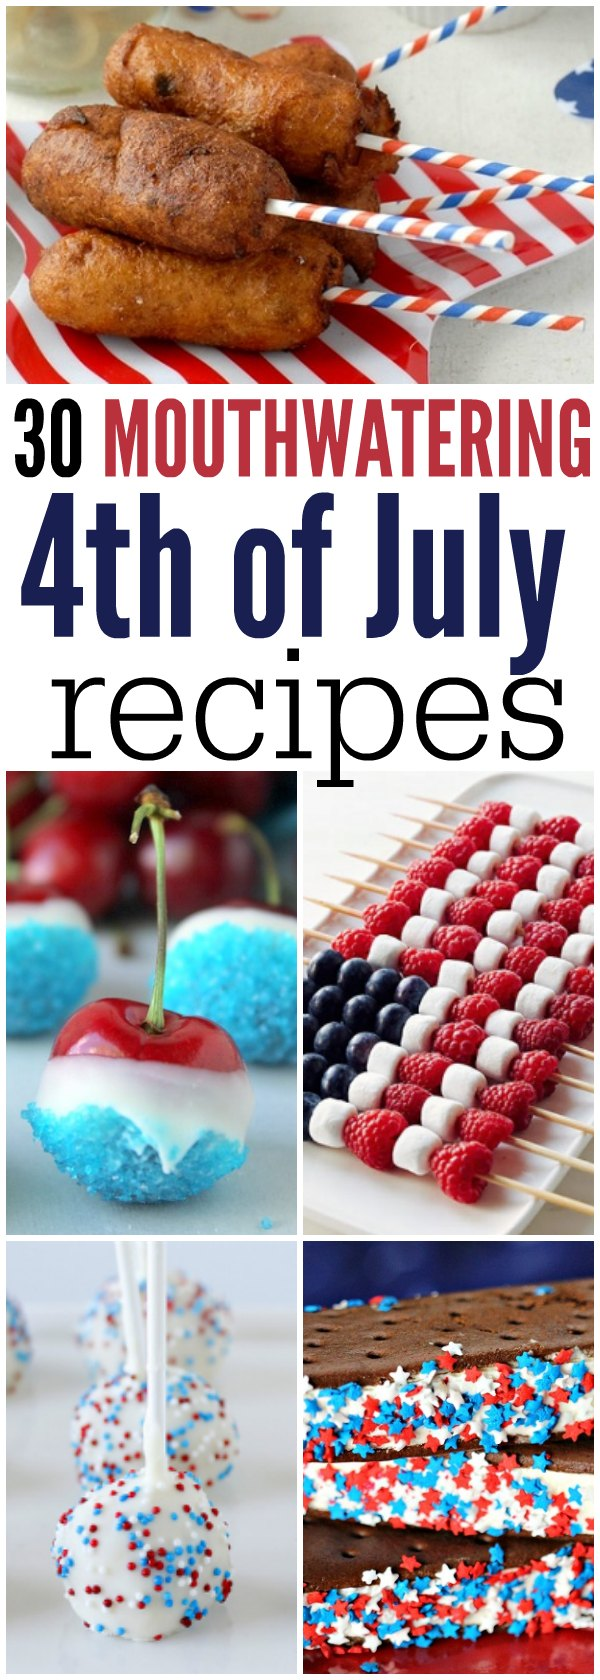 Check out the best 4th of July Recipes. Everyone will love these easy 4th of july recipes that are perfect for BBQ's. Over 30 4th of july bbq food ideas.